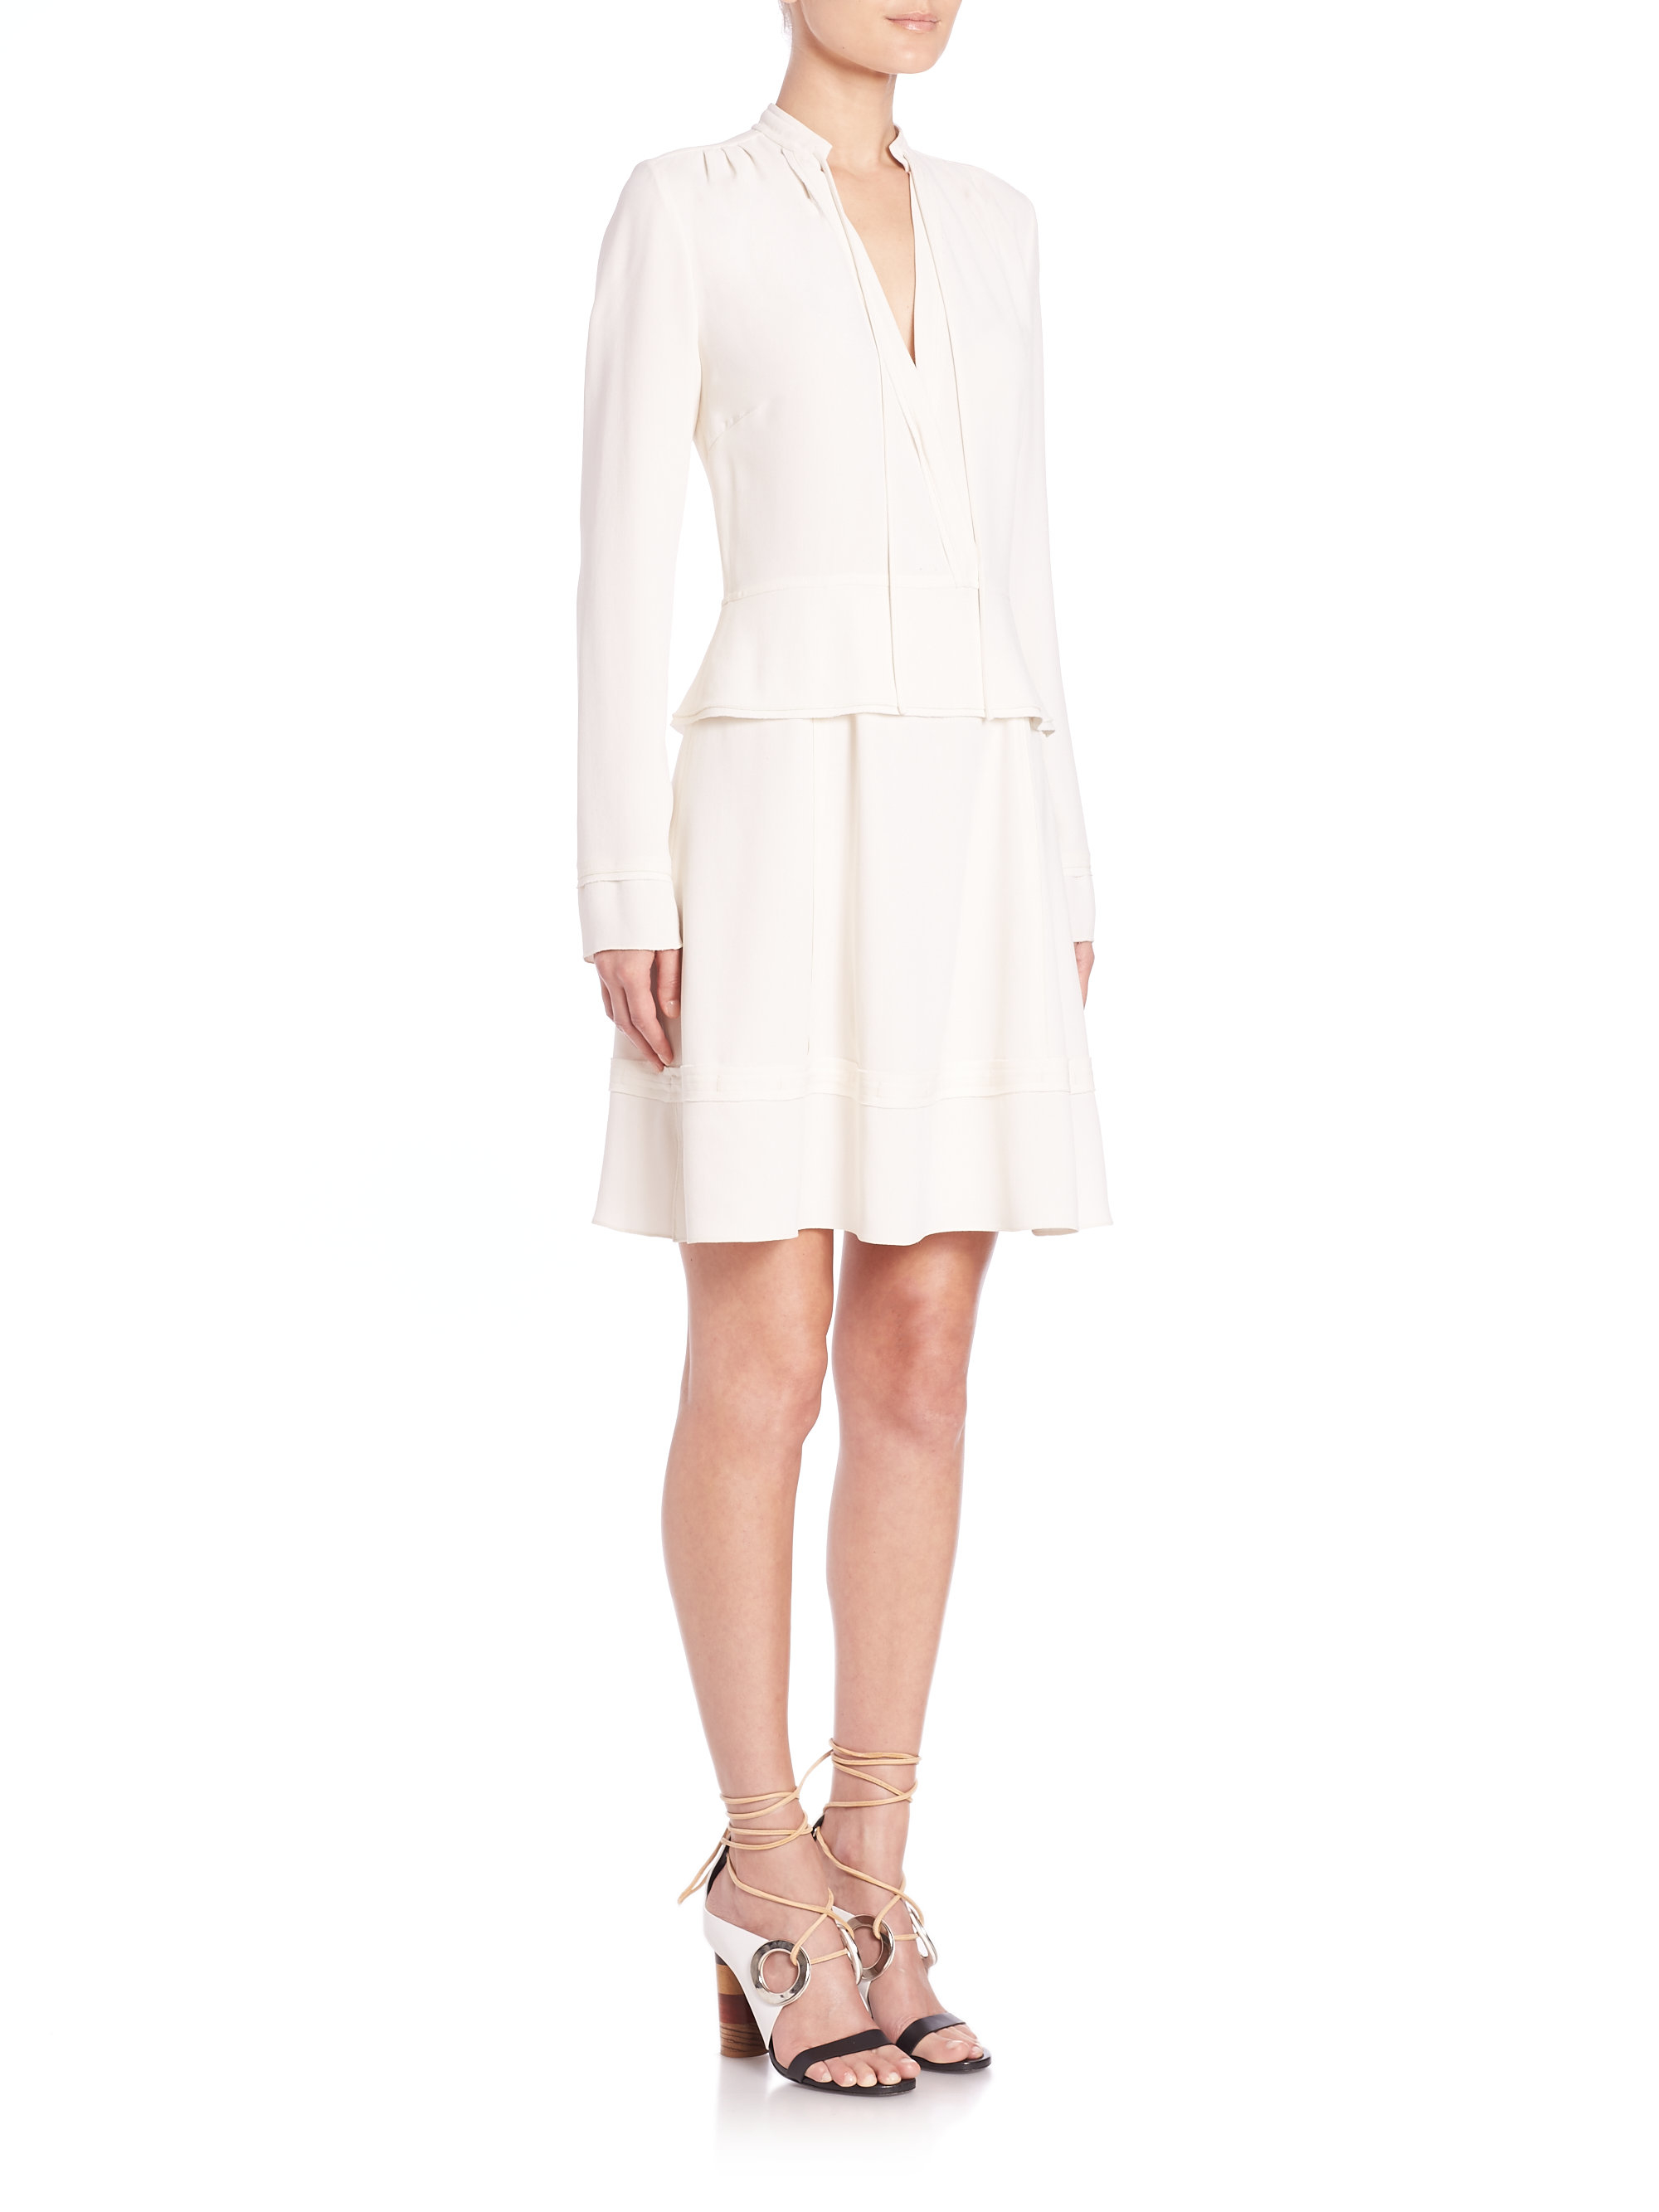 Proenza Schouler Woman Cold-shoulder Satin-crepe Dress White Size 2 Proenza Schouler Get Authentic Cheap Online Free Shipping Low Cost Cheap Price Discount Authentic 2018 For Sale Outlet Cheap Prices QC3N0NuCt